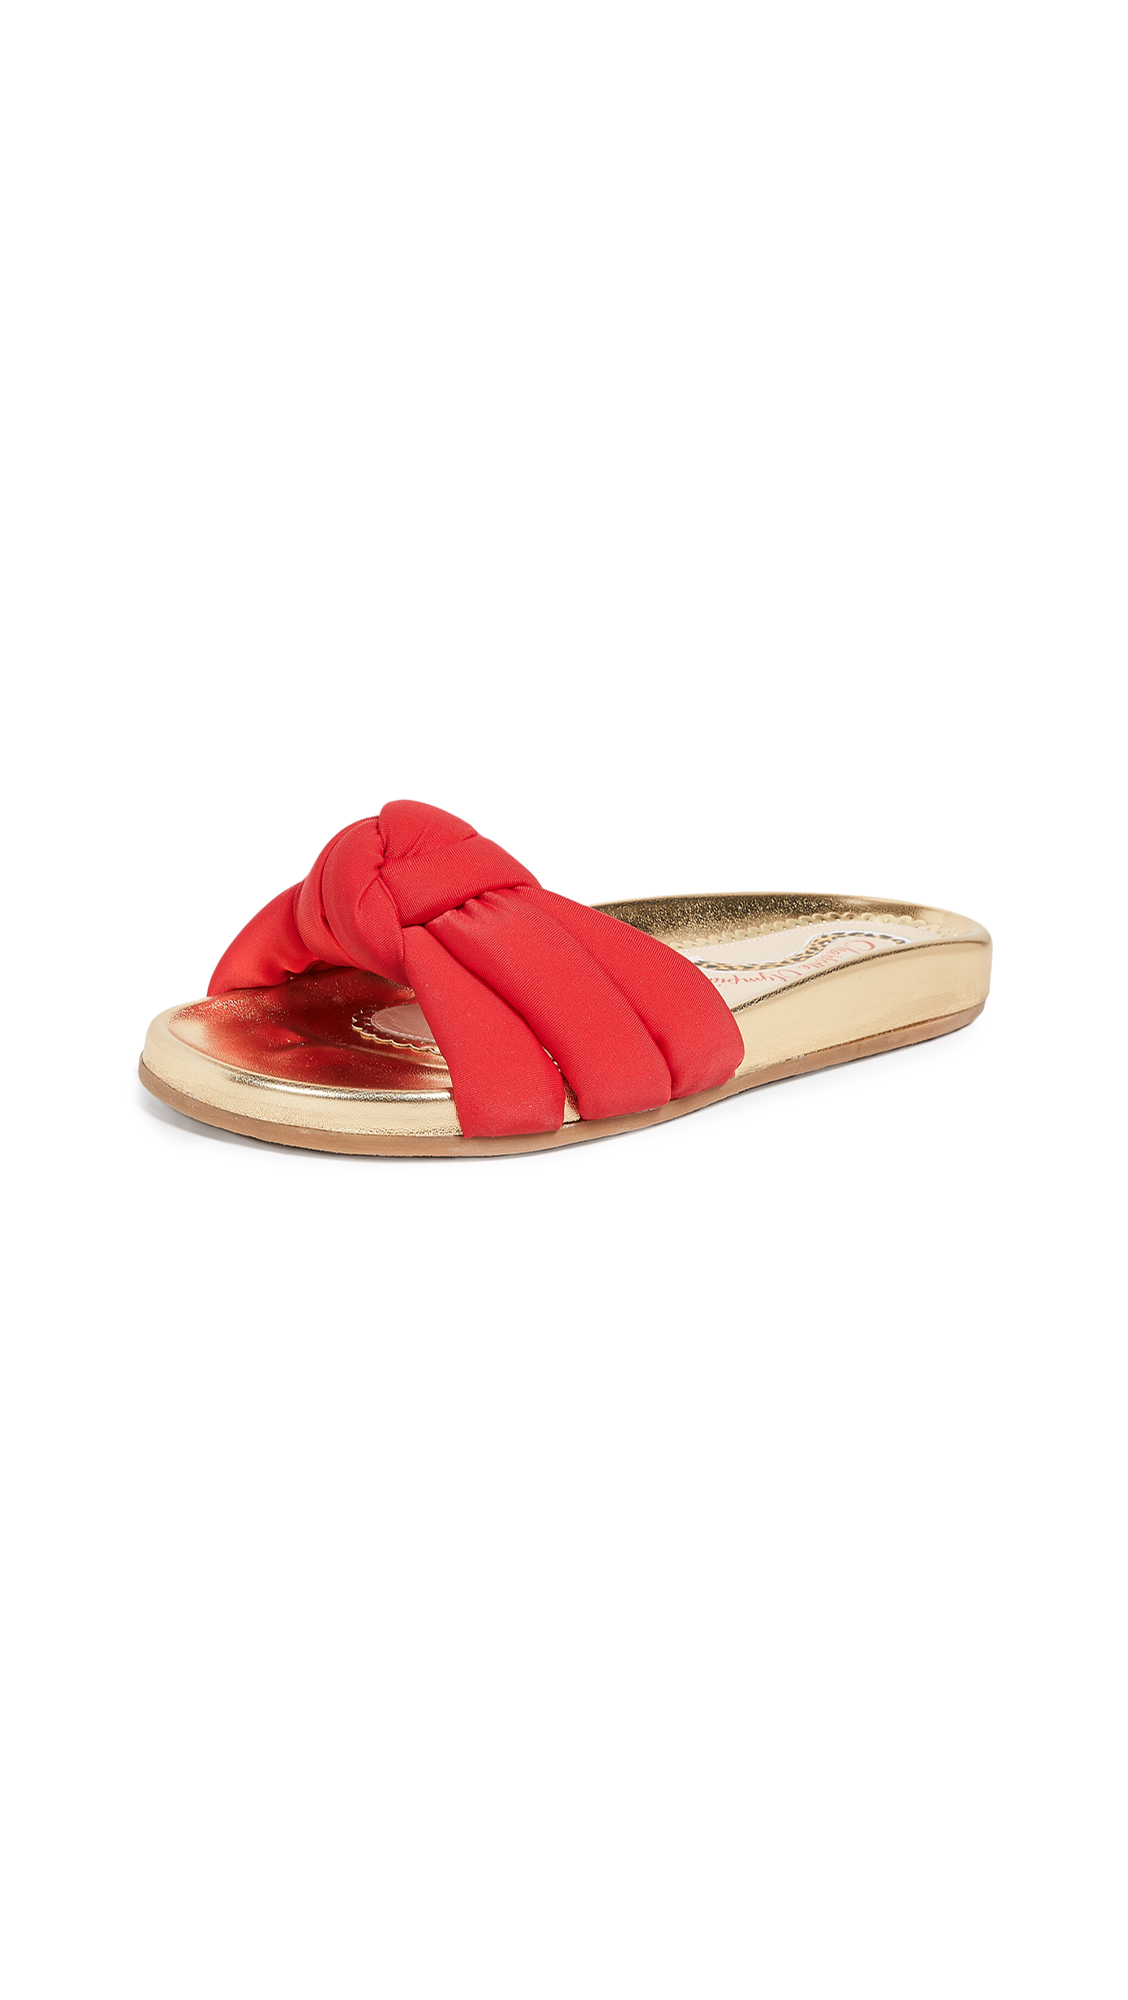 Charlotte Olympia Dylan Slide Sandals - Red